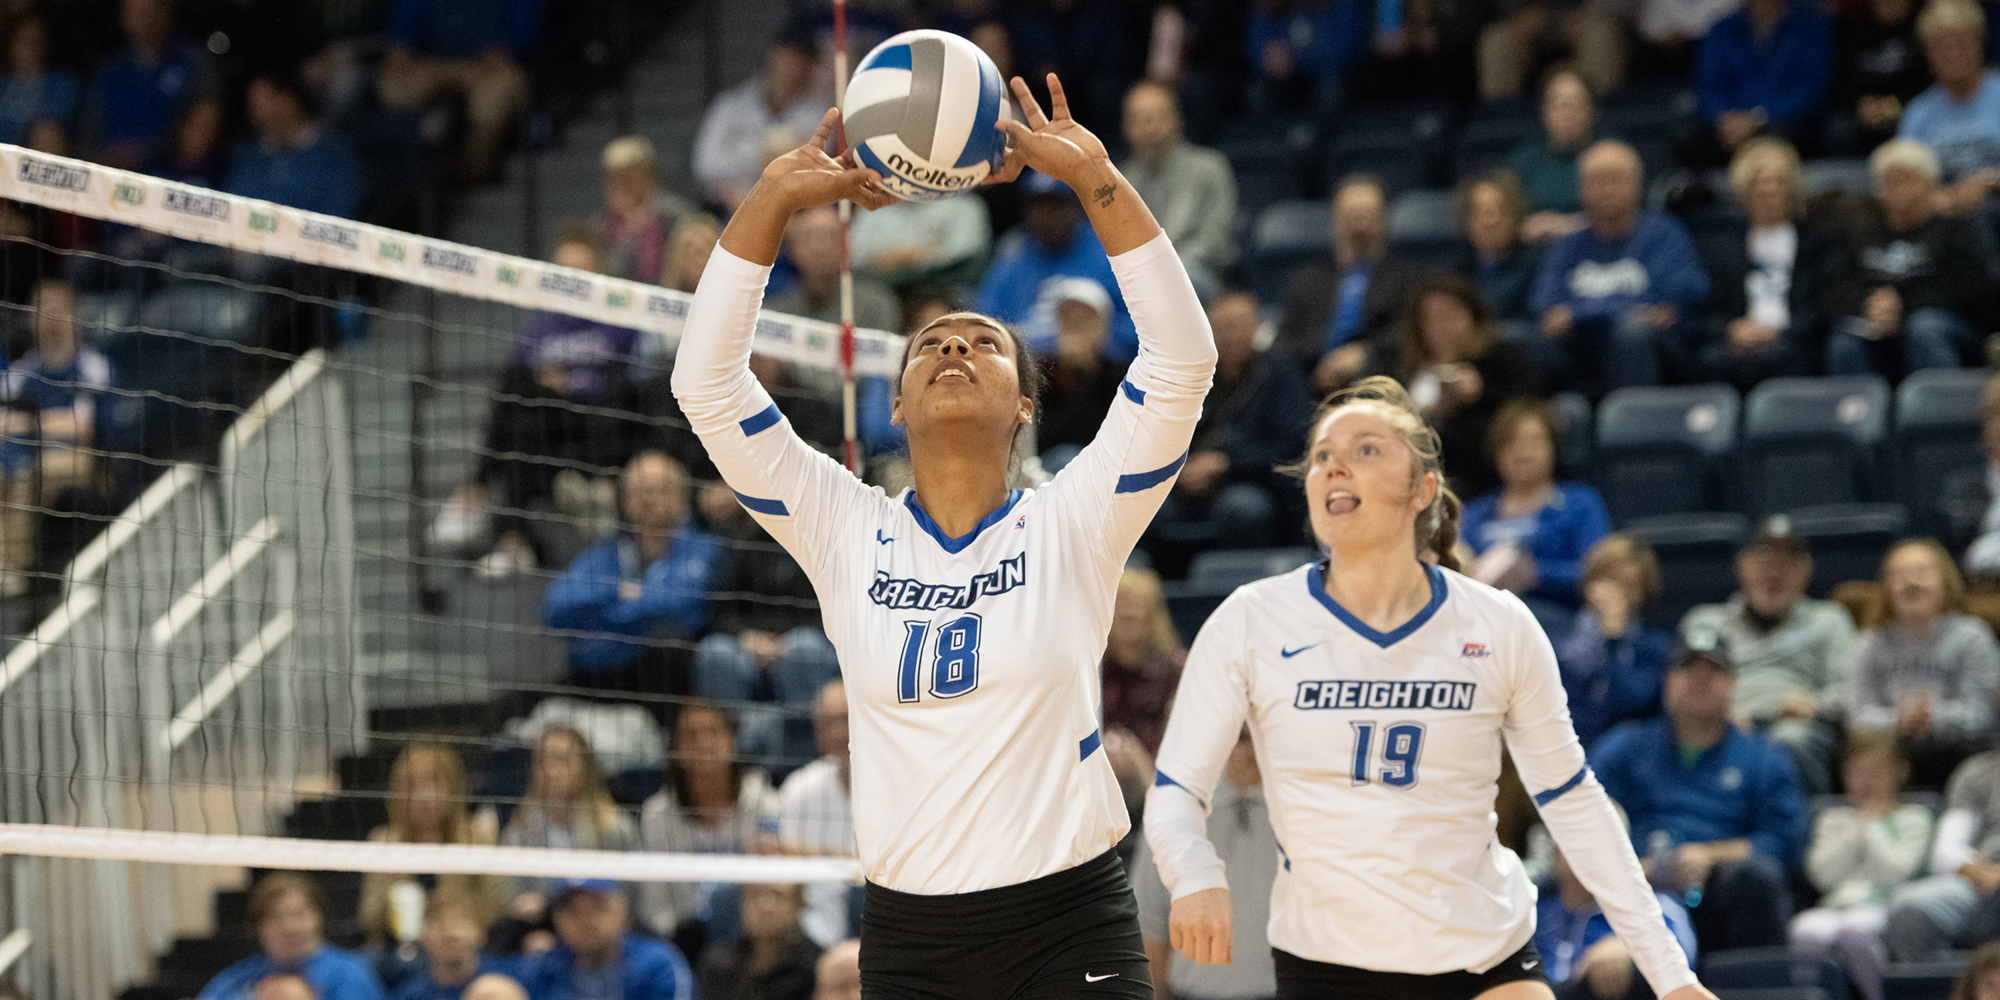 Volleyball Ranked 15th In Final Regular Season Poll Creighton University Athletics